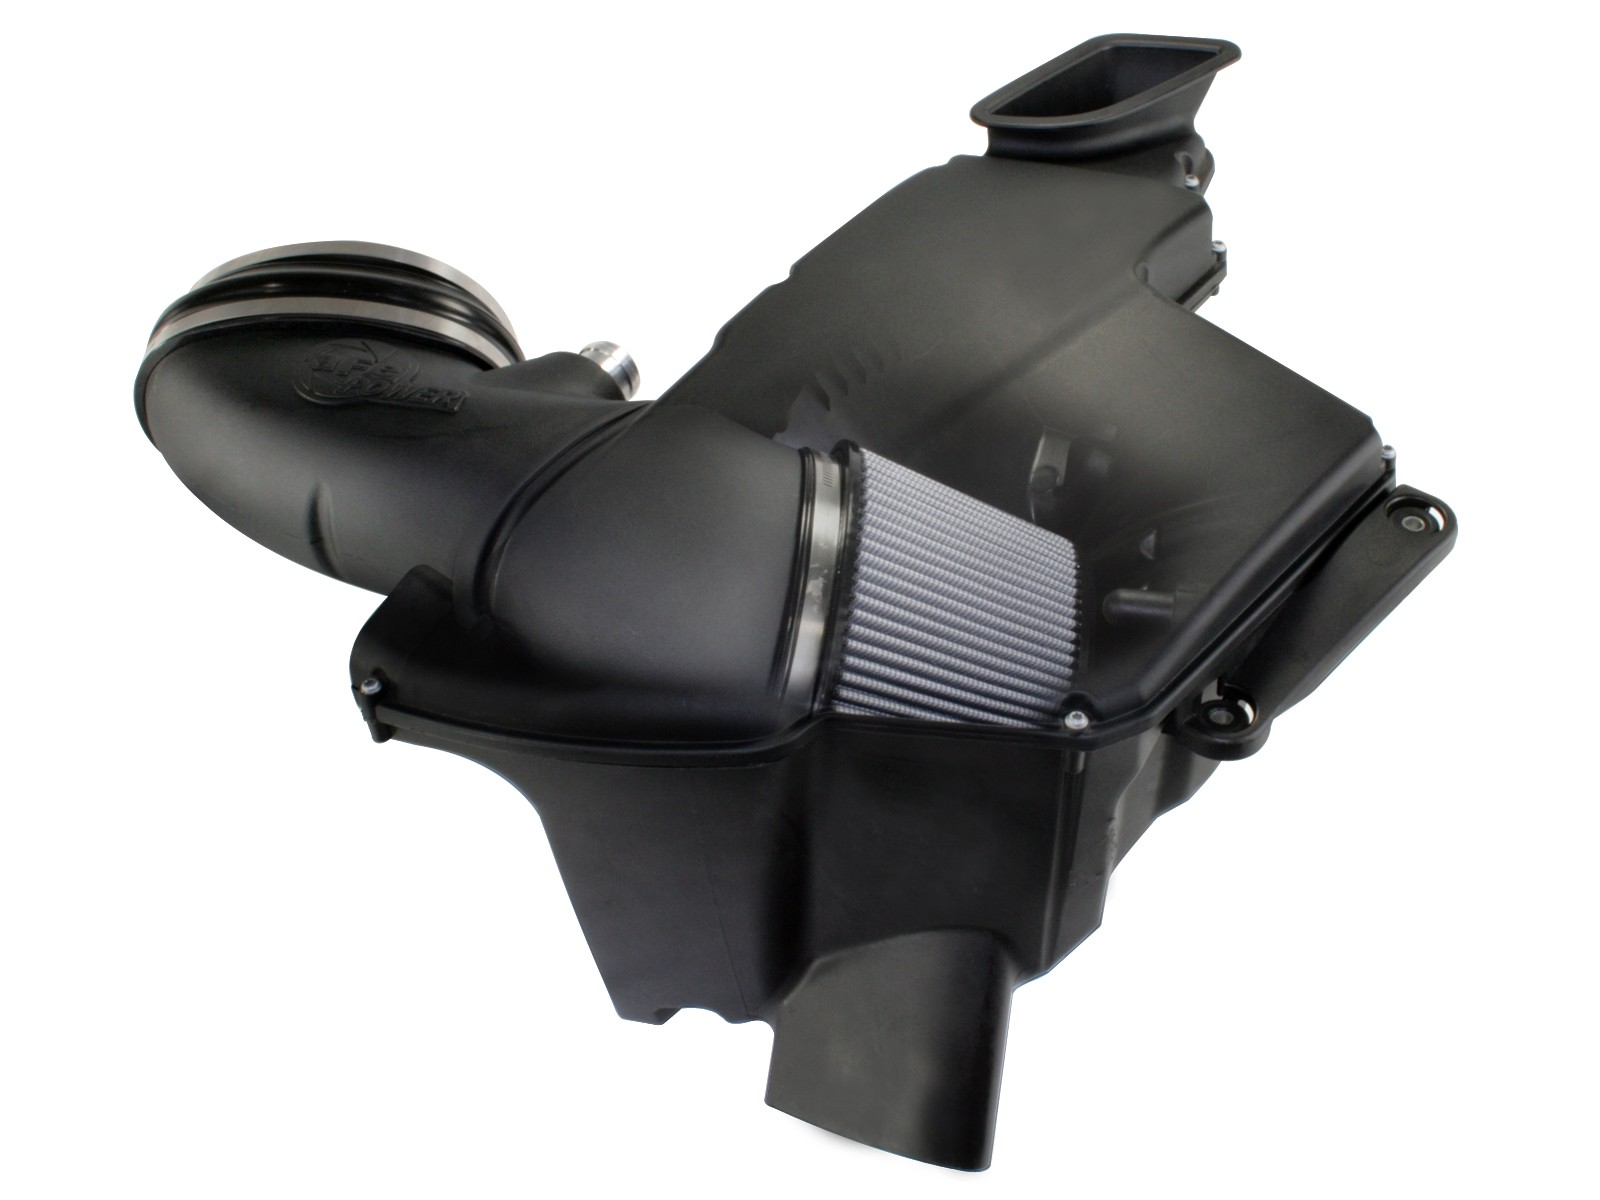 aFe POWER 51-31662 Magnum FORCE Stage-2 Pro DRY S Cold Air Intake System